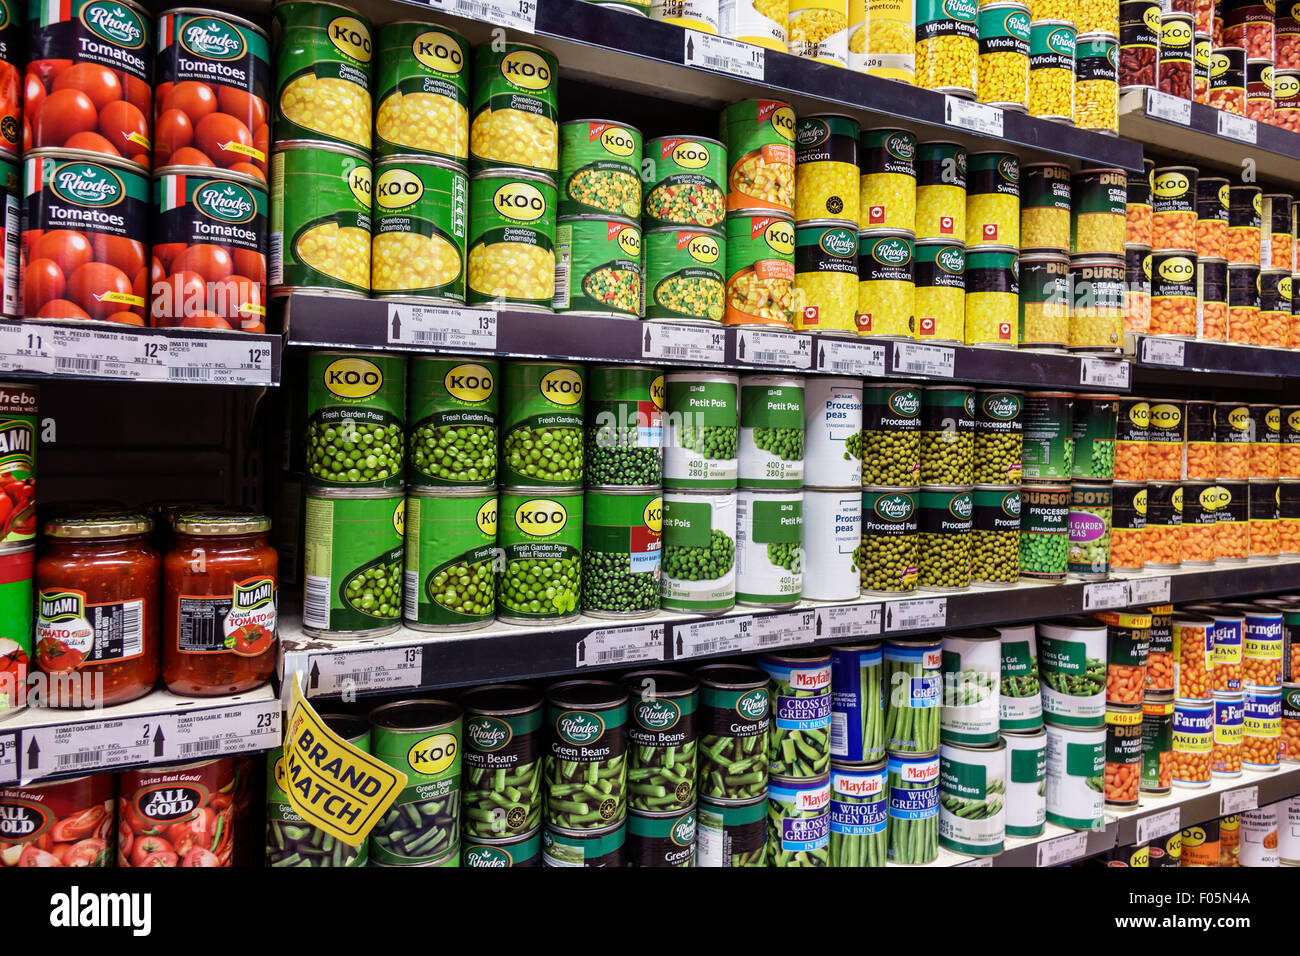 Pick n pay south africa online shopping